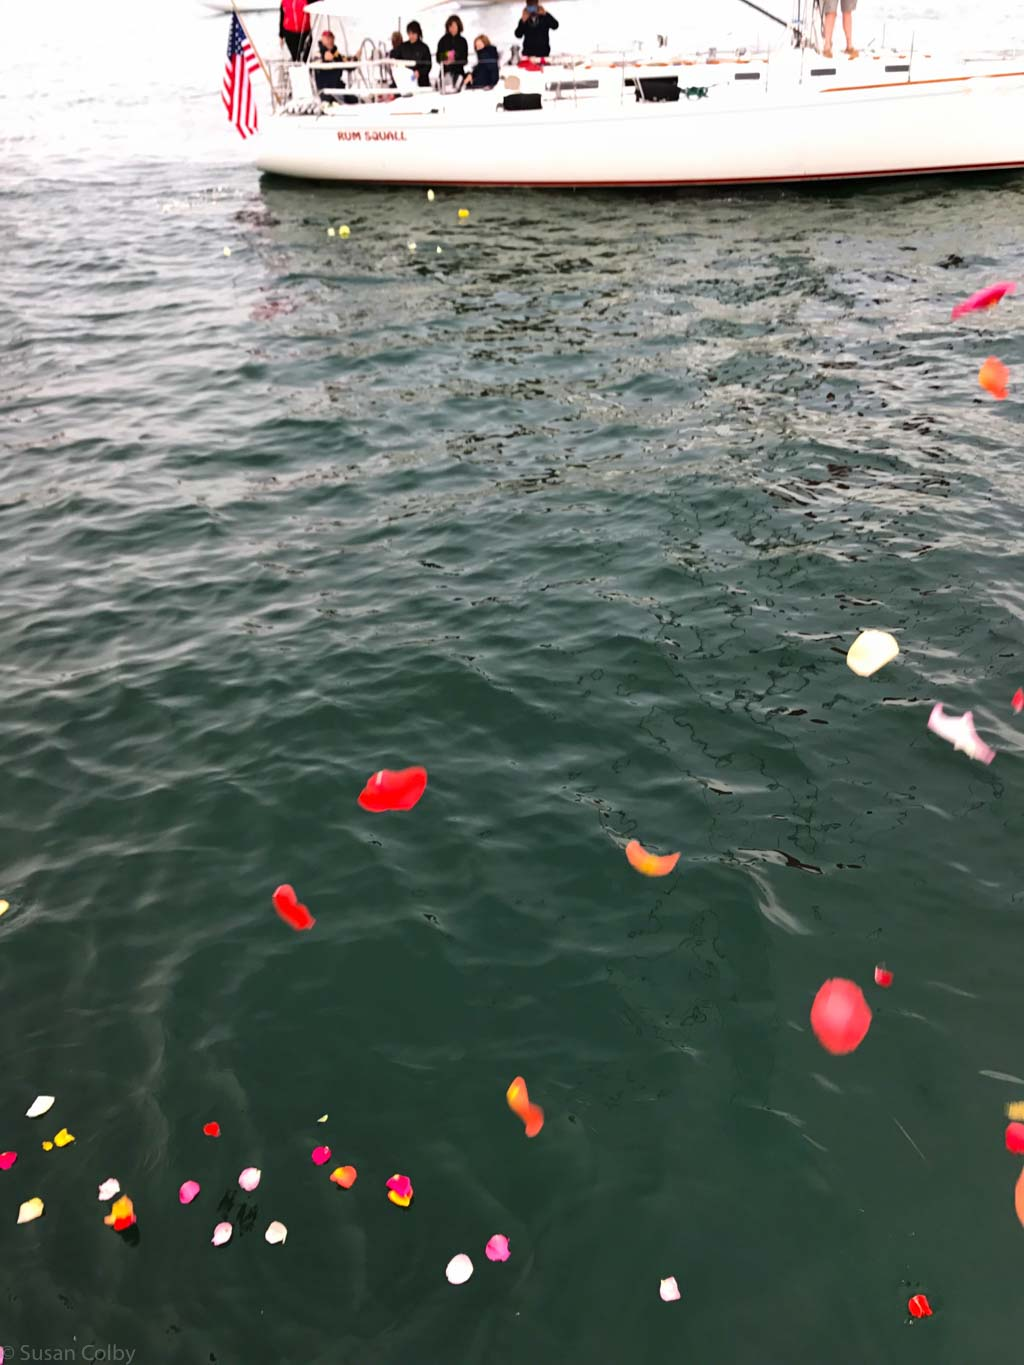 Rose petals on the water